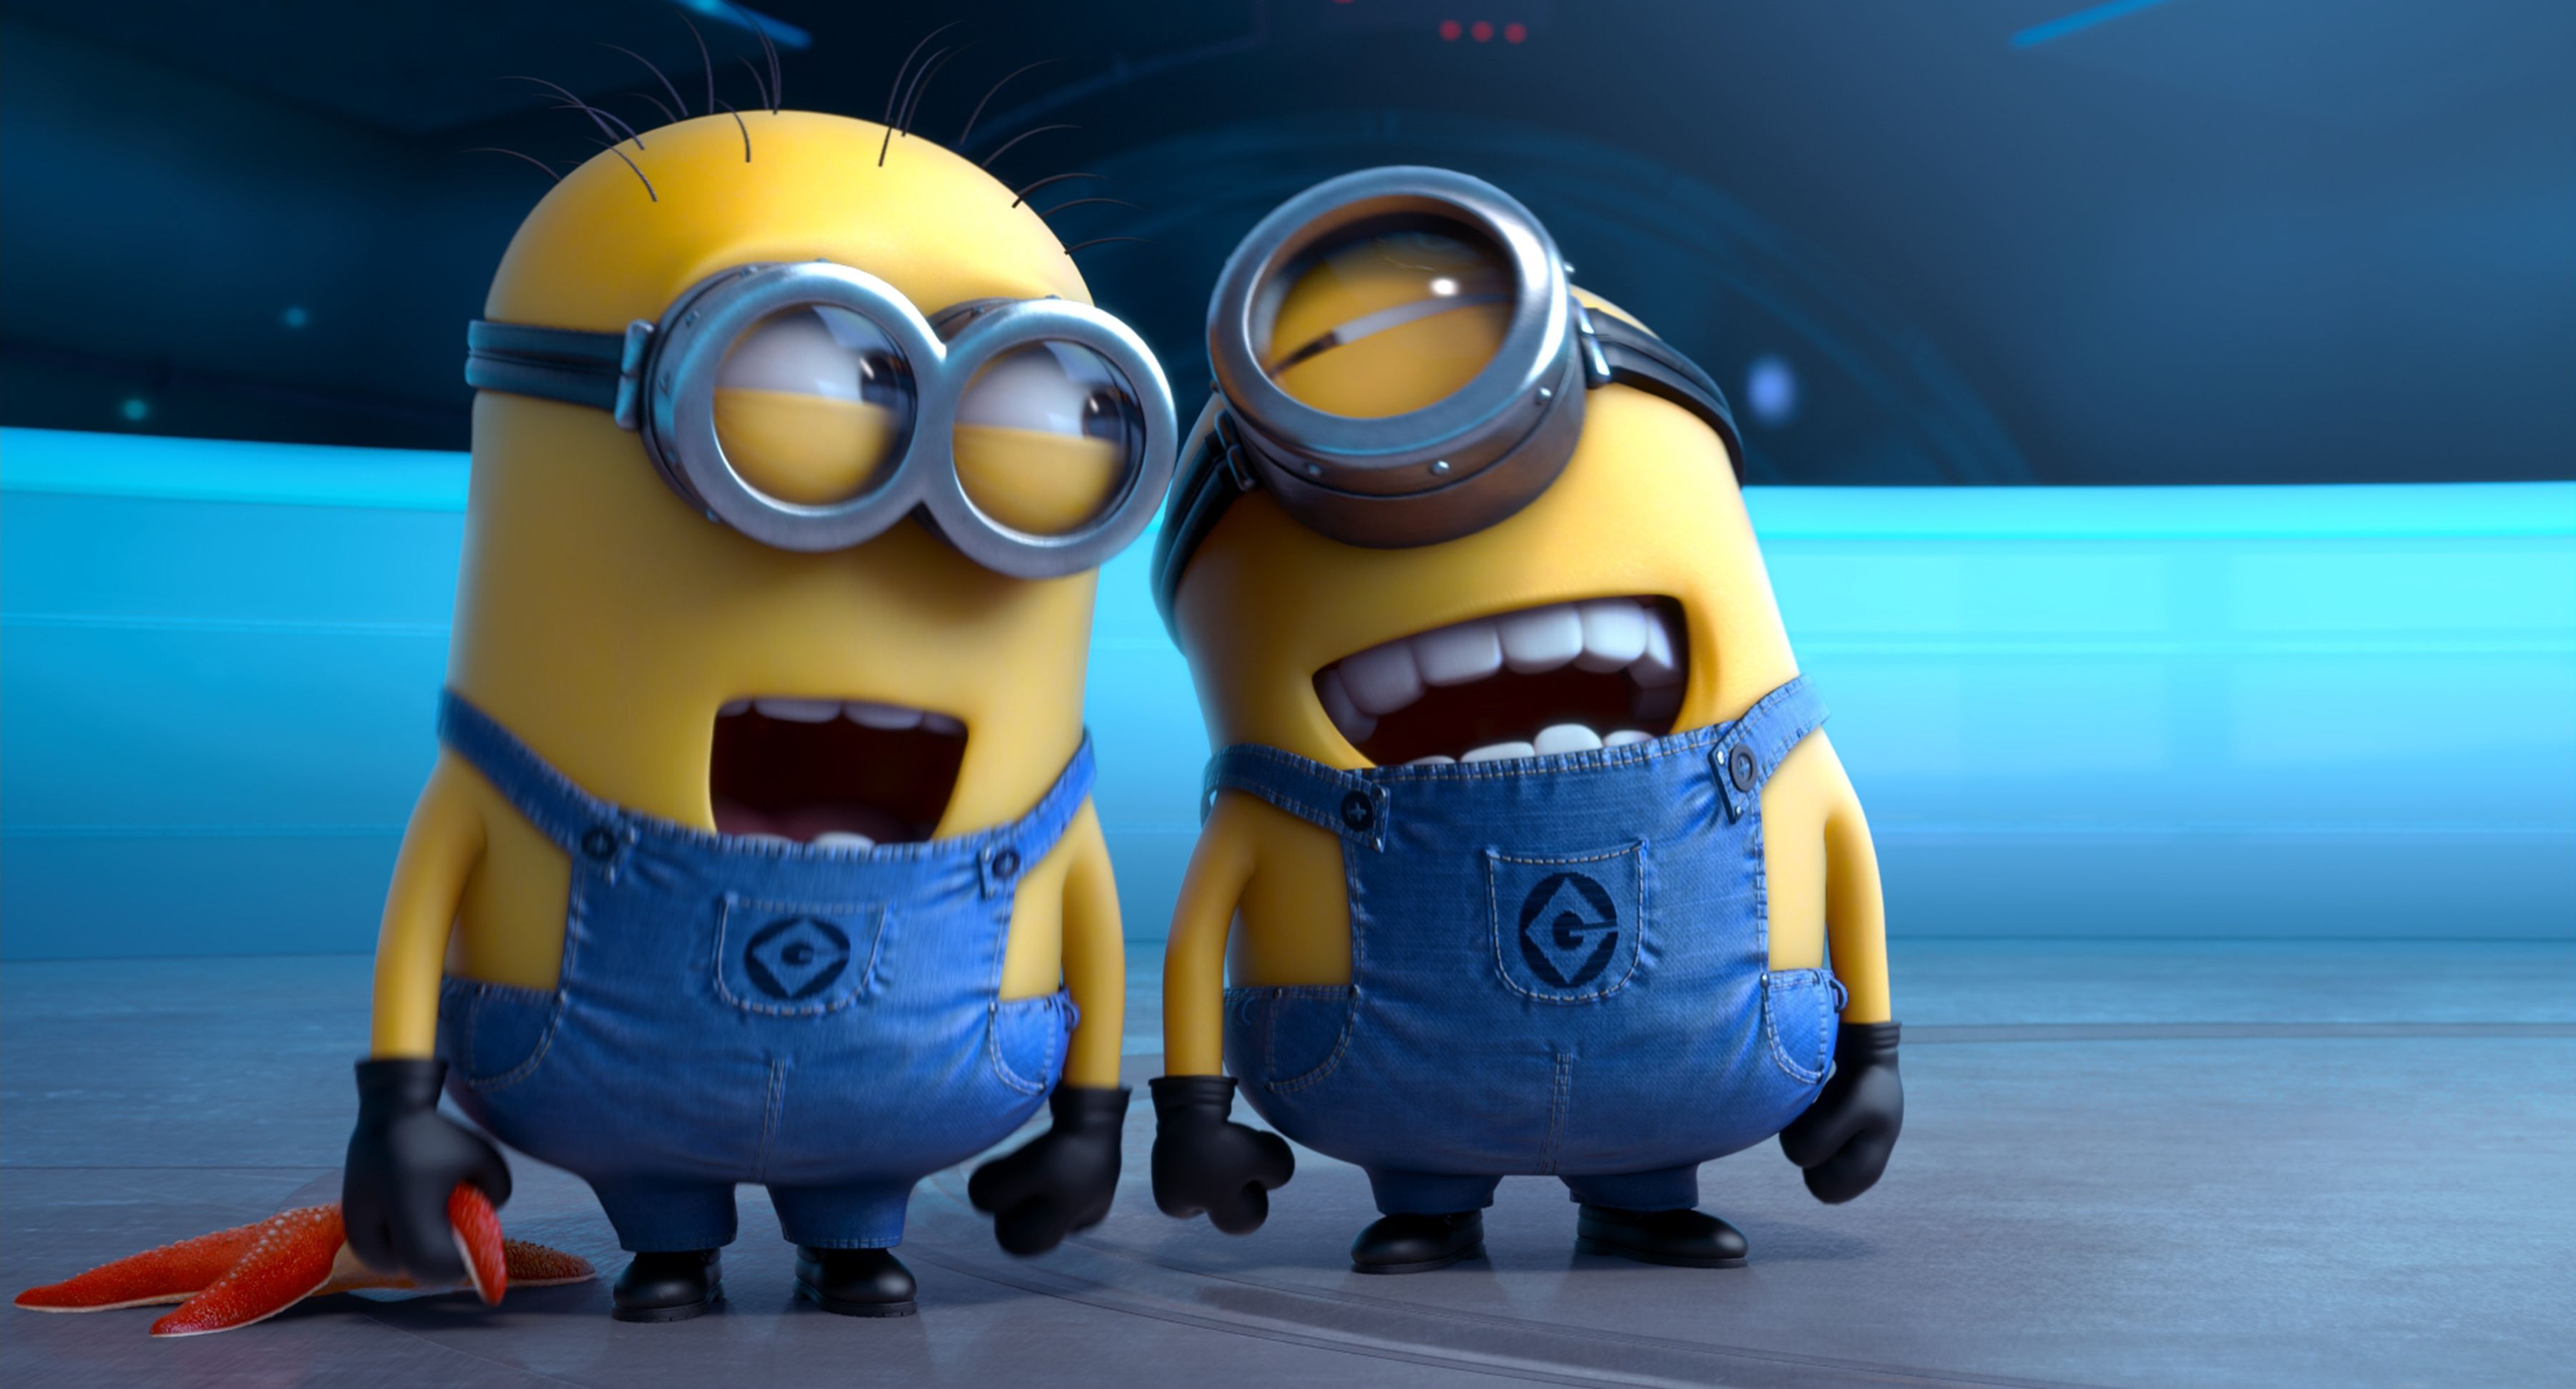 Fun despicable me 2 goodies free ring tones games more - Despicable me minion screensaver ...